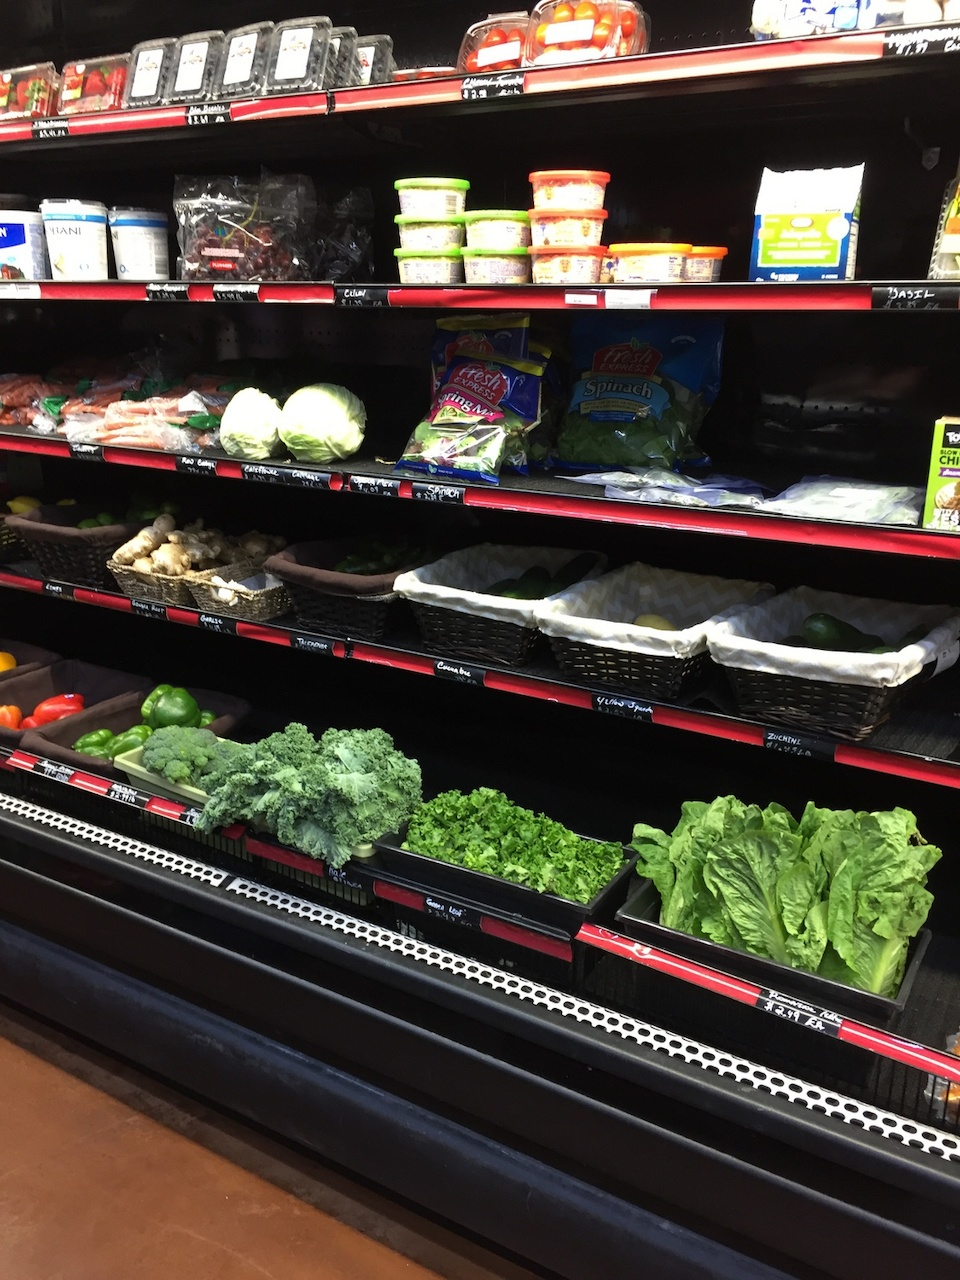 There are plenty of pantry staples, as well as fresh produce and grab-and-go options at both City Market locations.